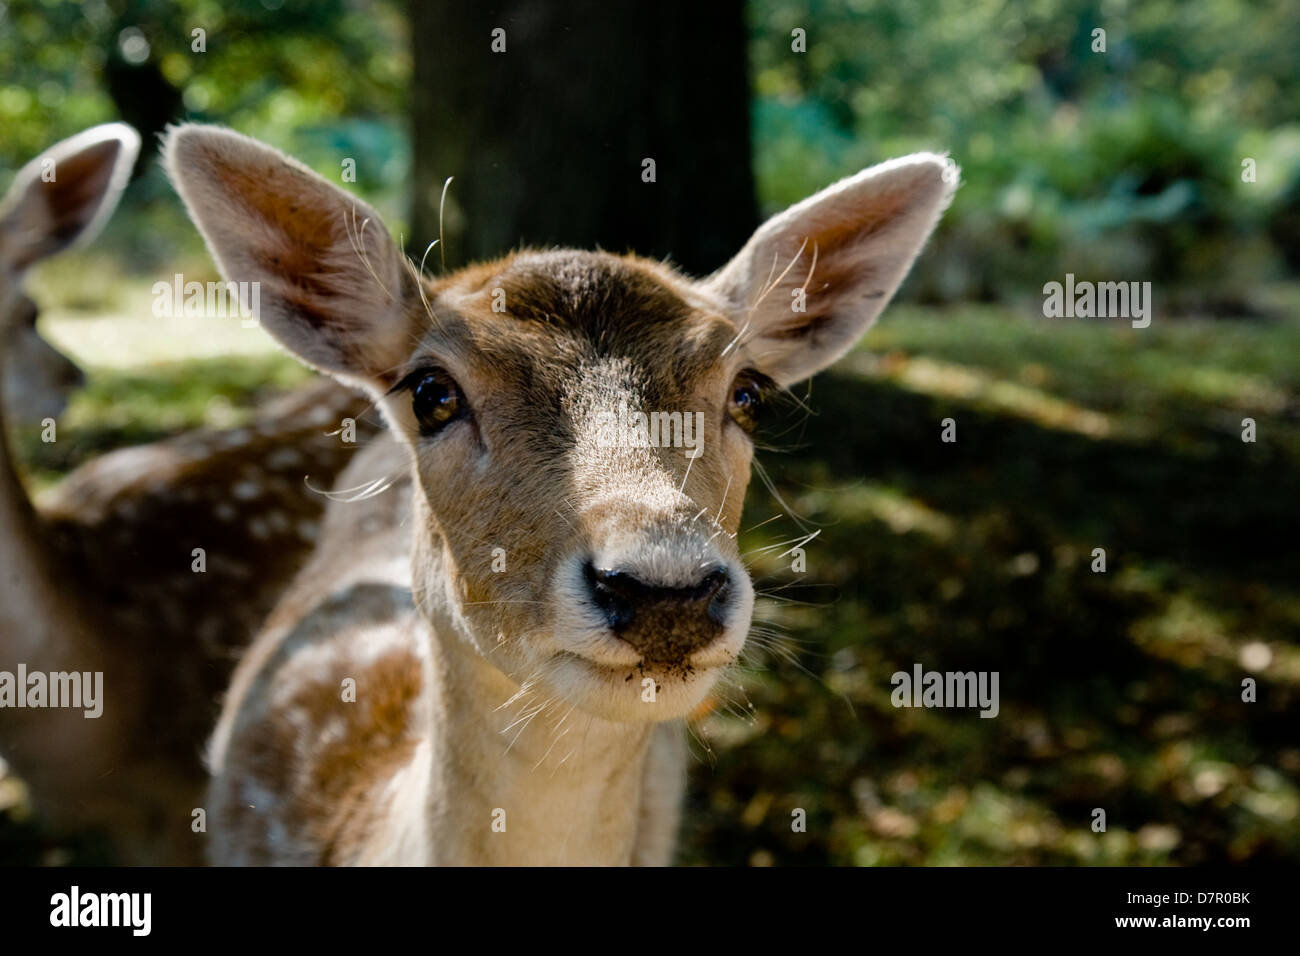 Young fallow deer looking directly into the lens.  Close up, a portrait of Bambi. - Stock Image